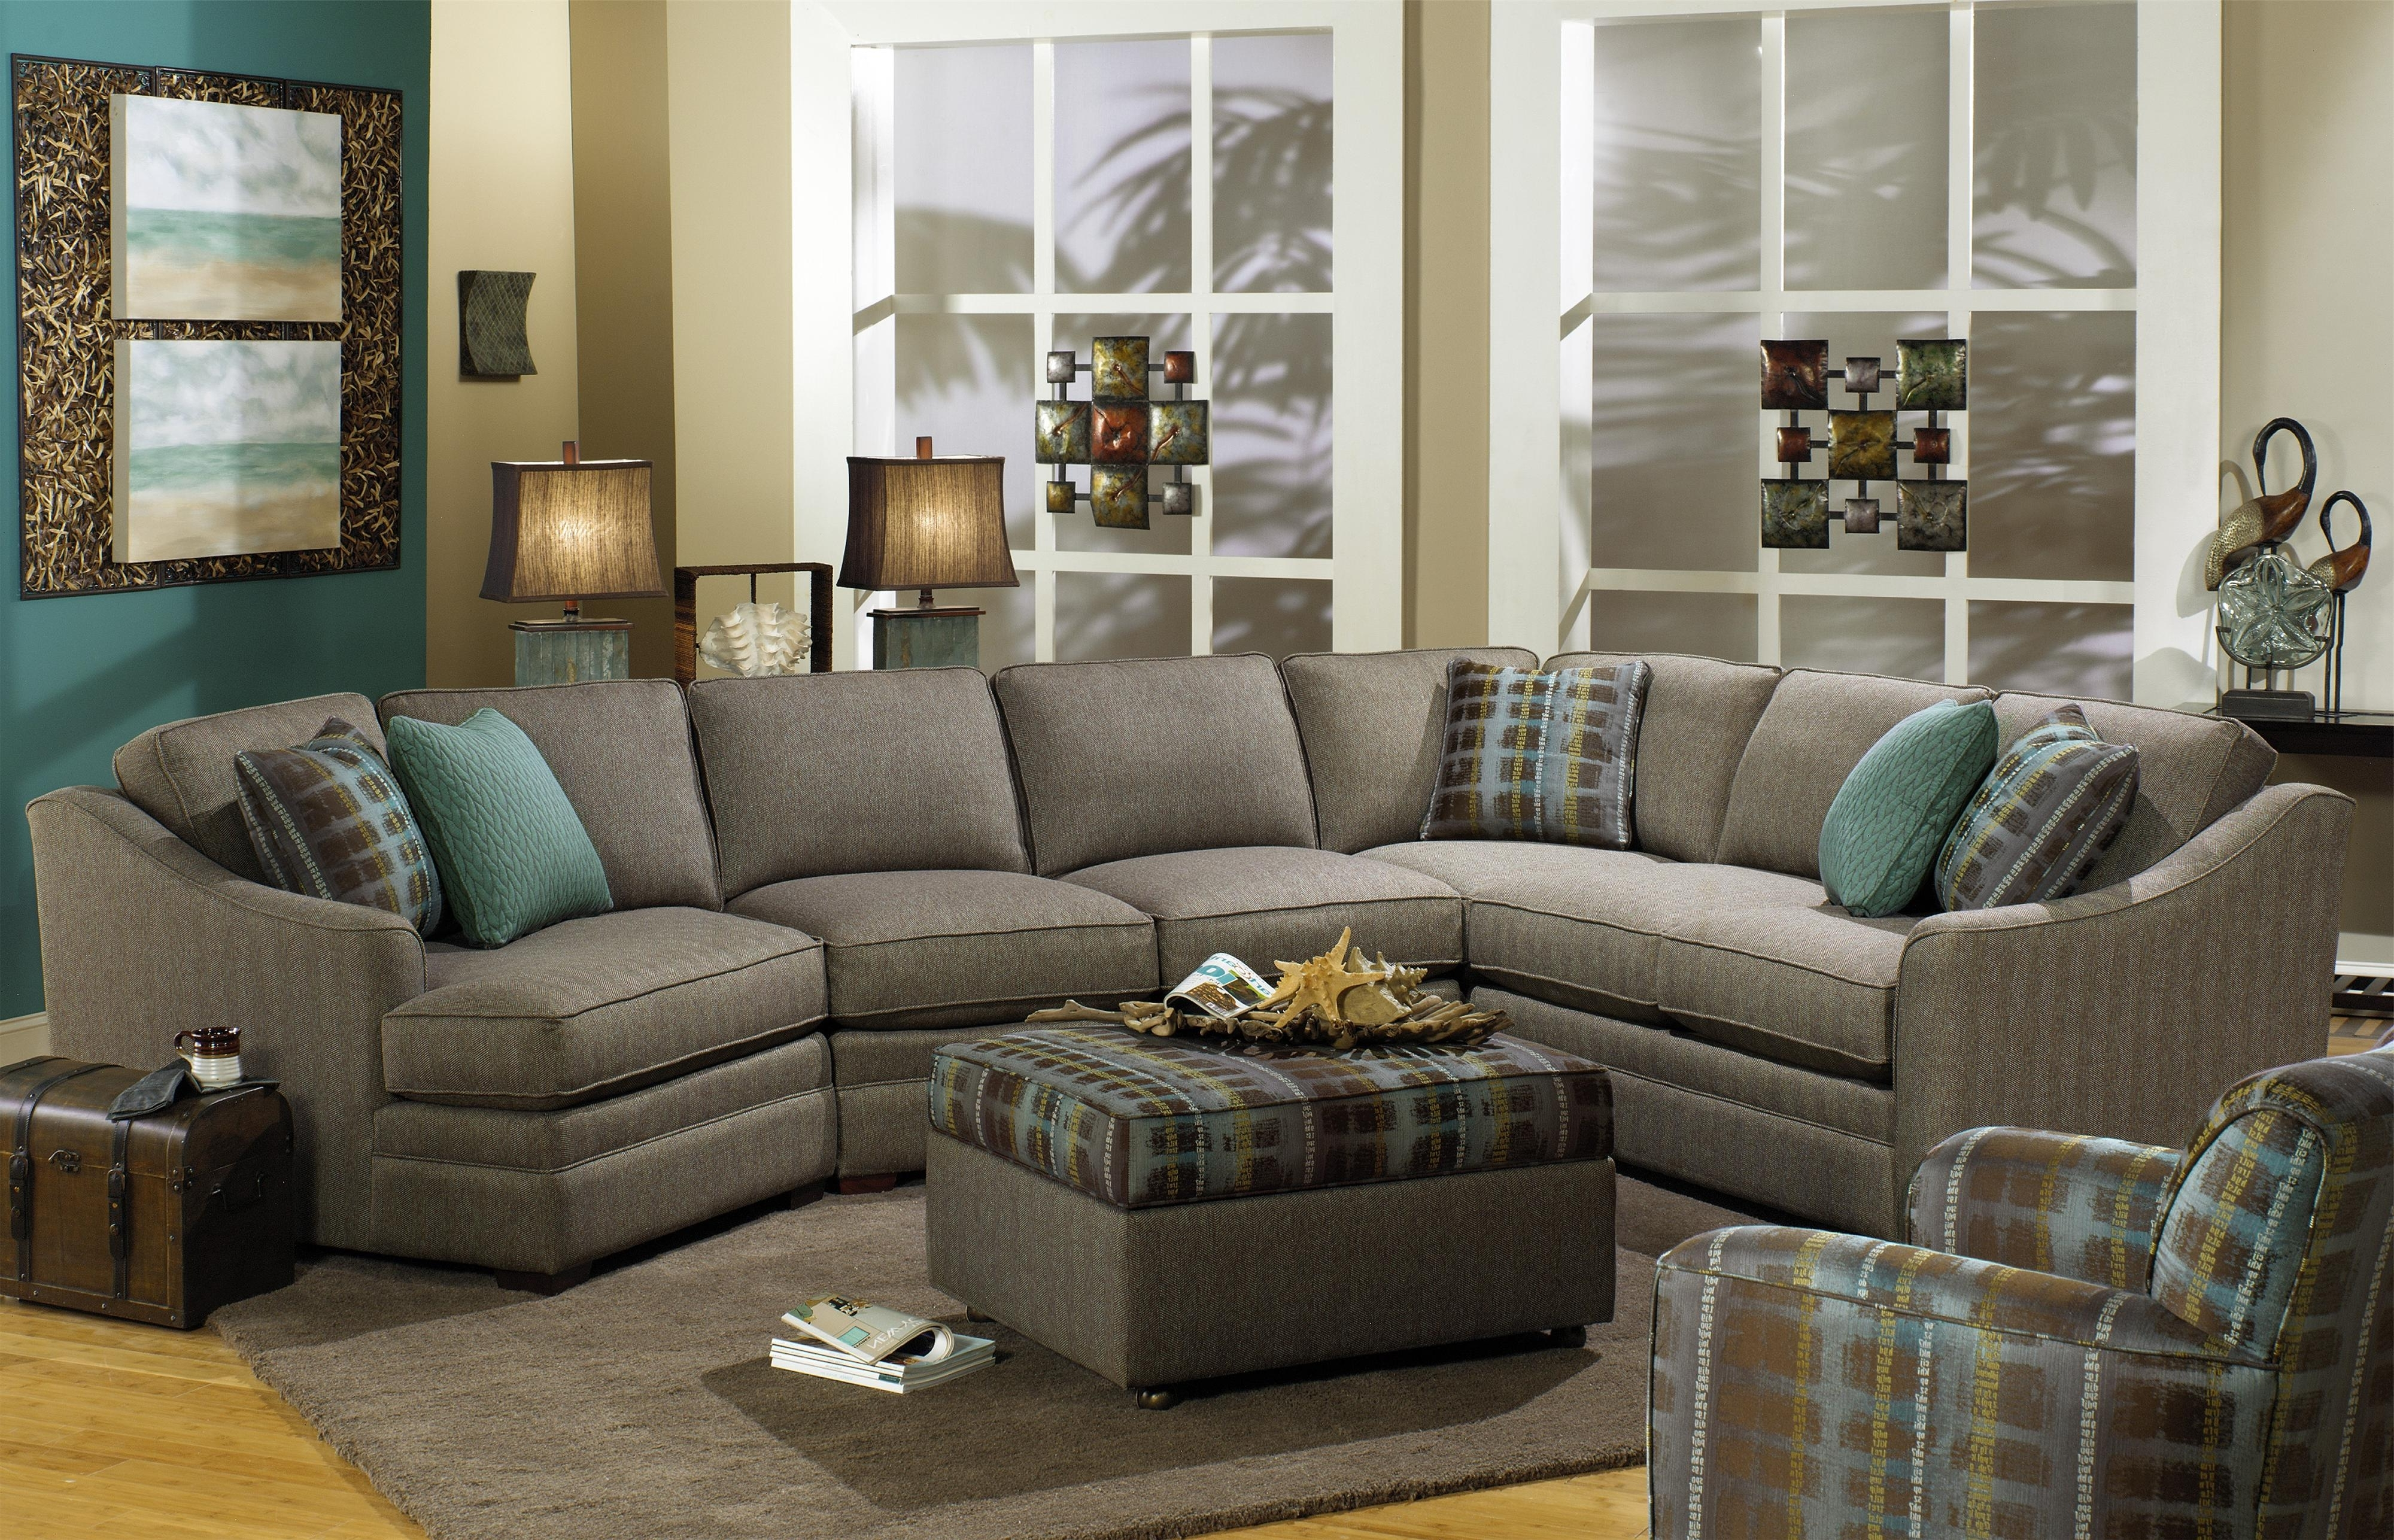 B>Customizable</b> 3 Piece Sectional With Raf Cuddler In Famous Sectional Sofas With Cuddler (View 2 of 20)